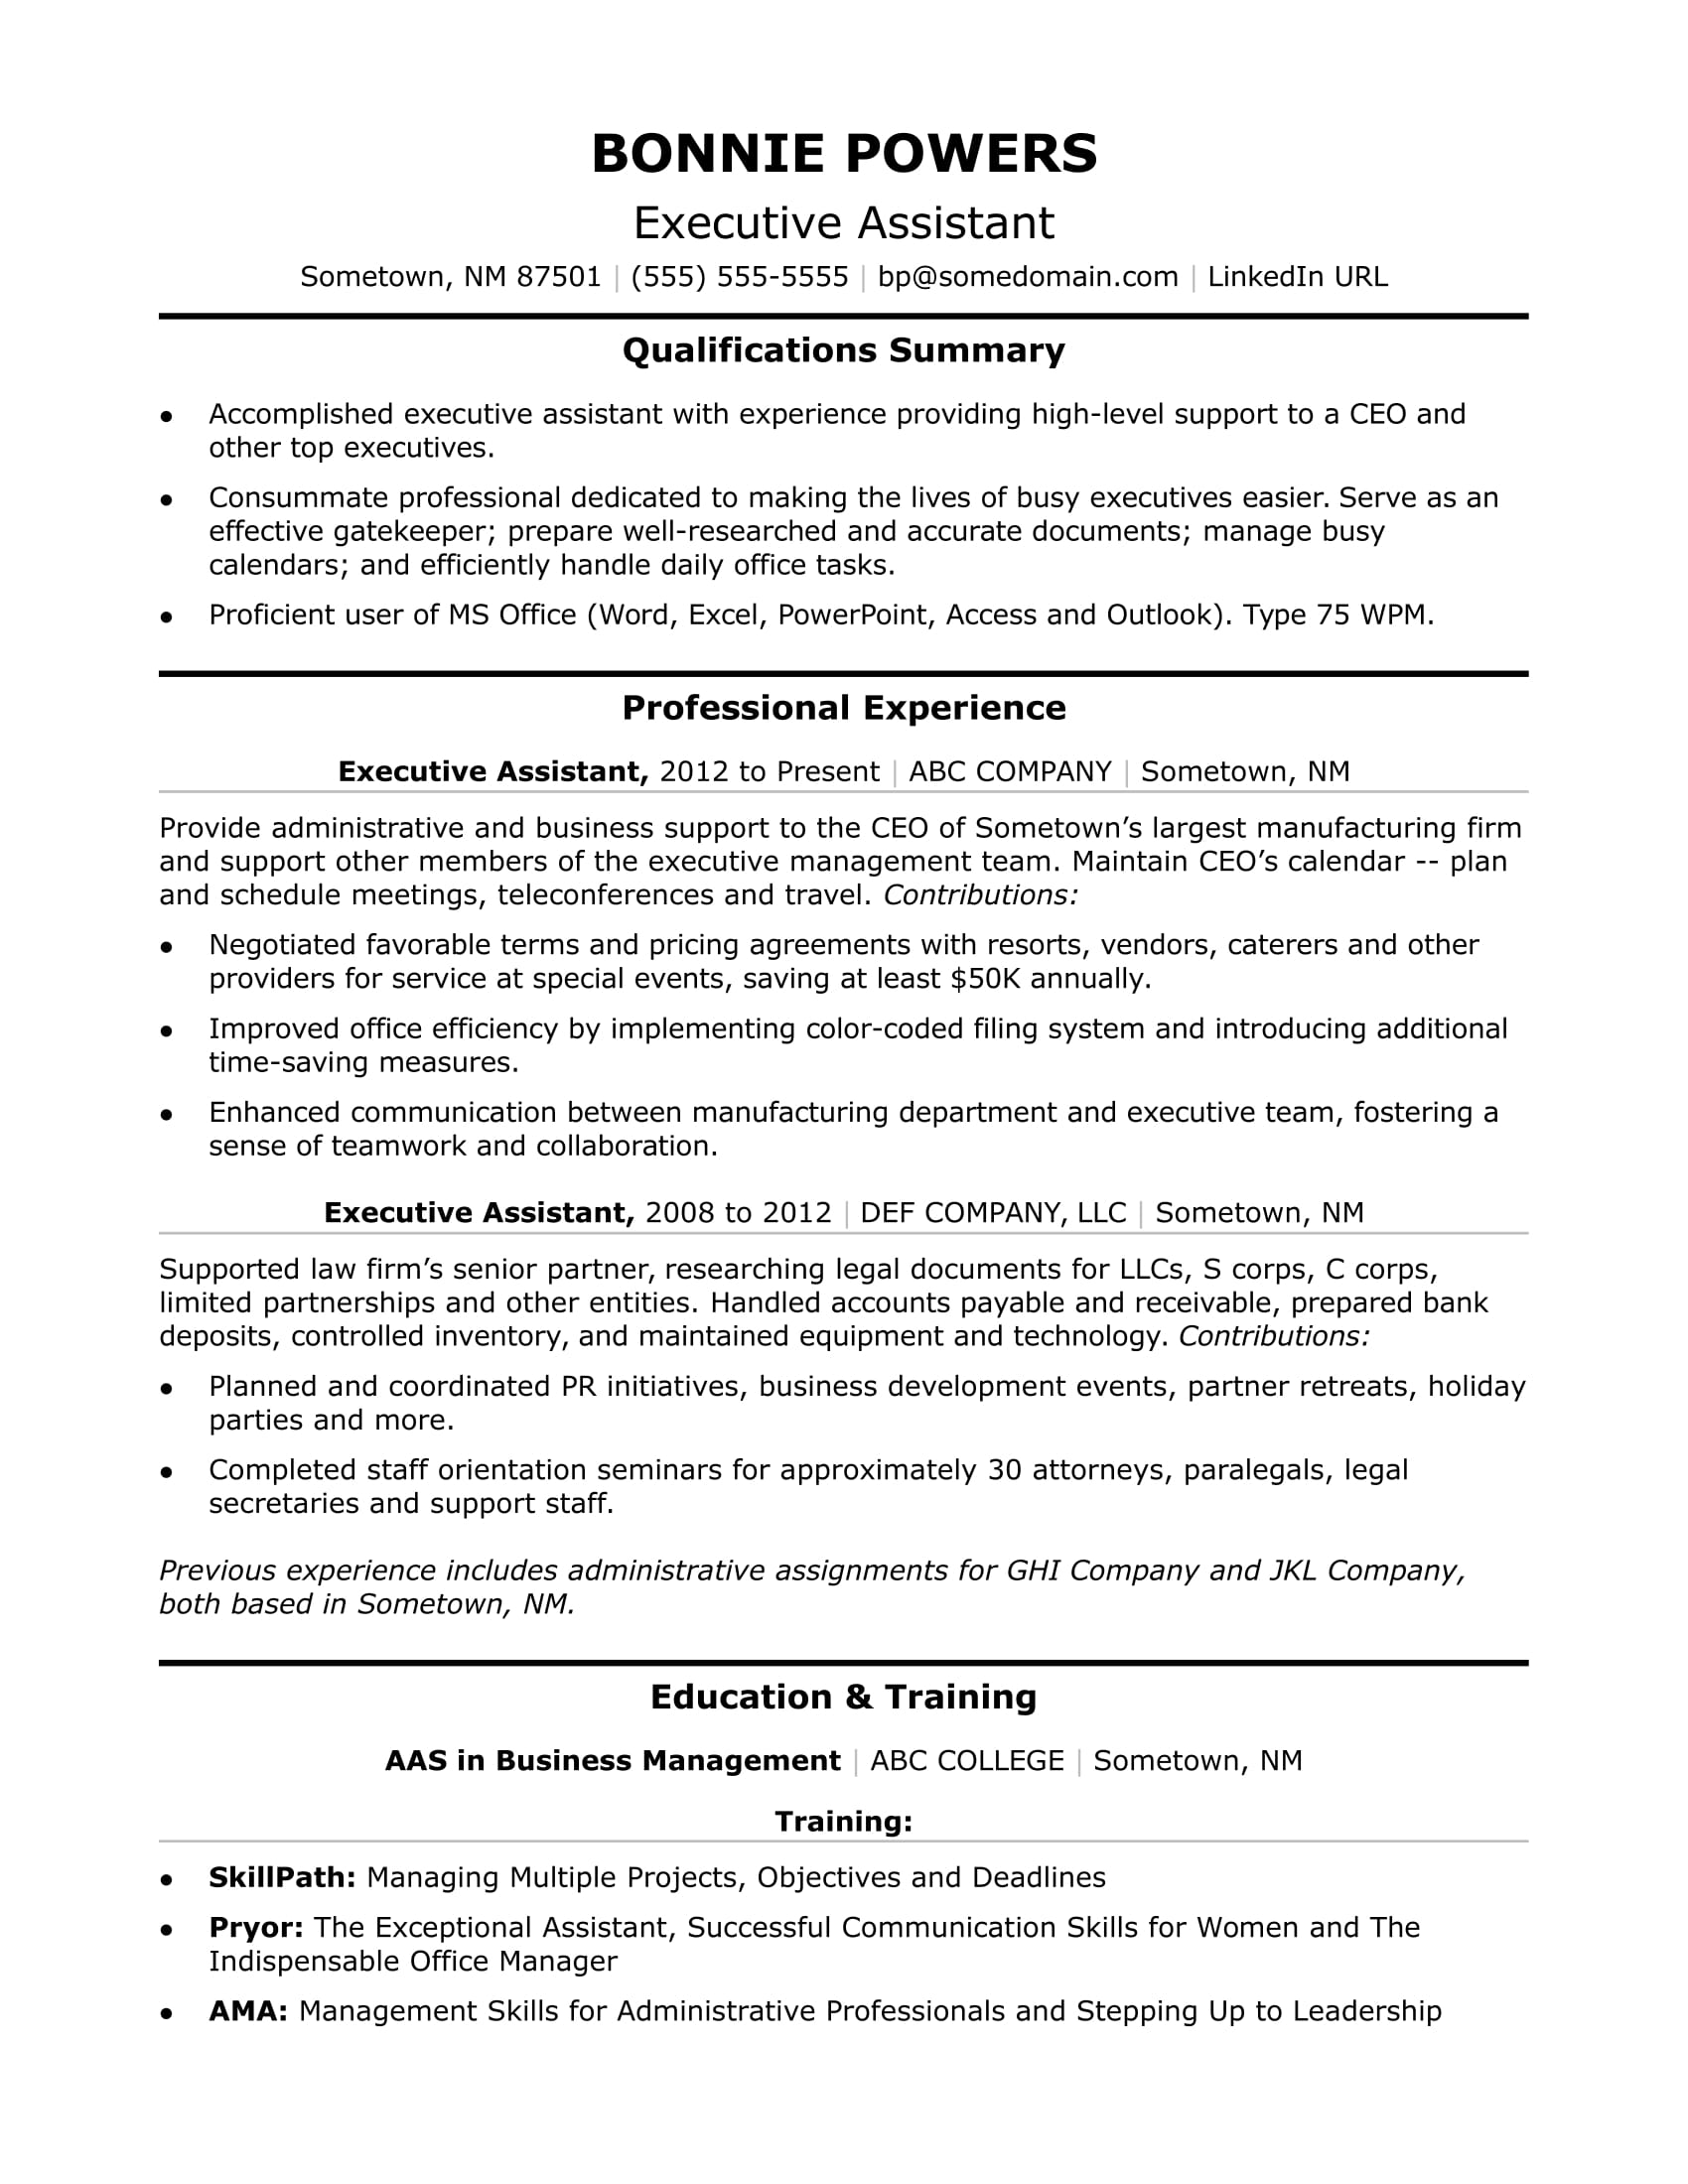 Executive Administrative Assistant Resume Sample  Resume Example For Administrative Assistant